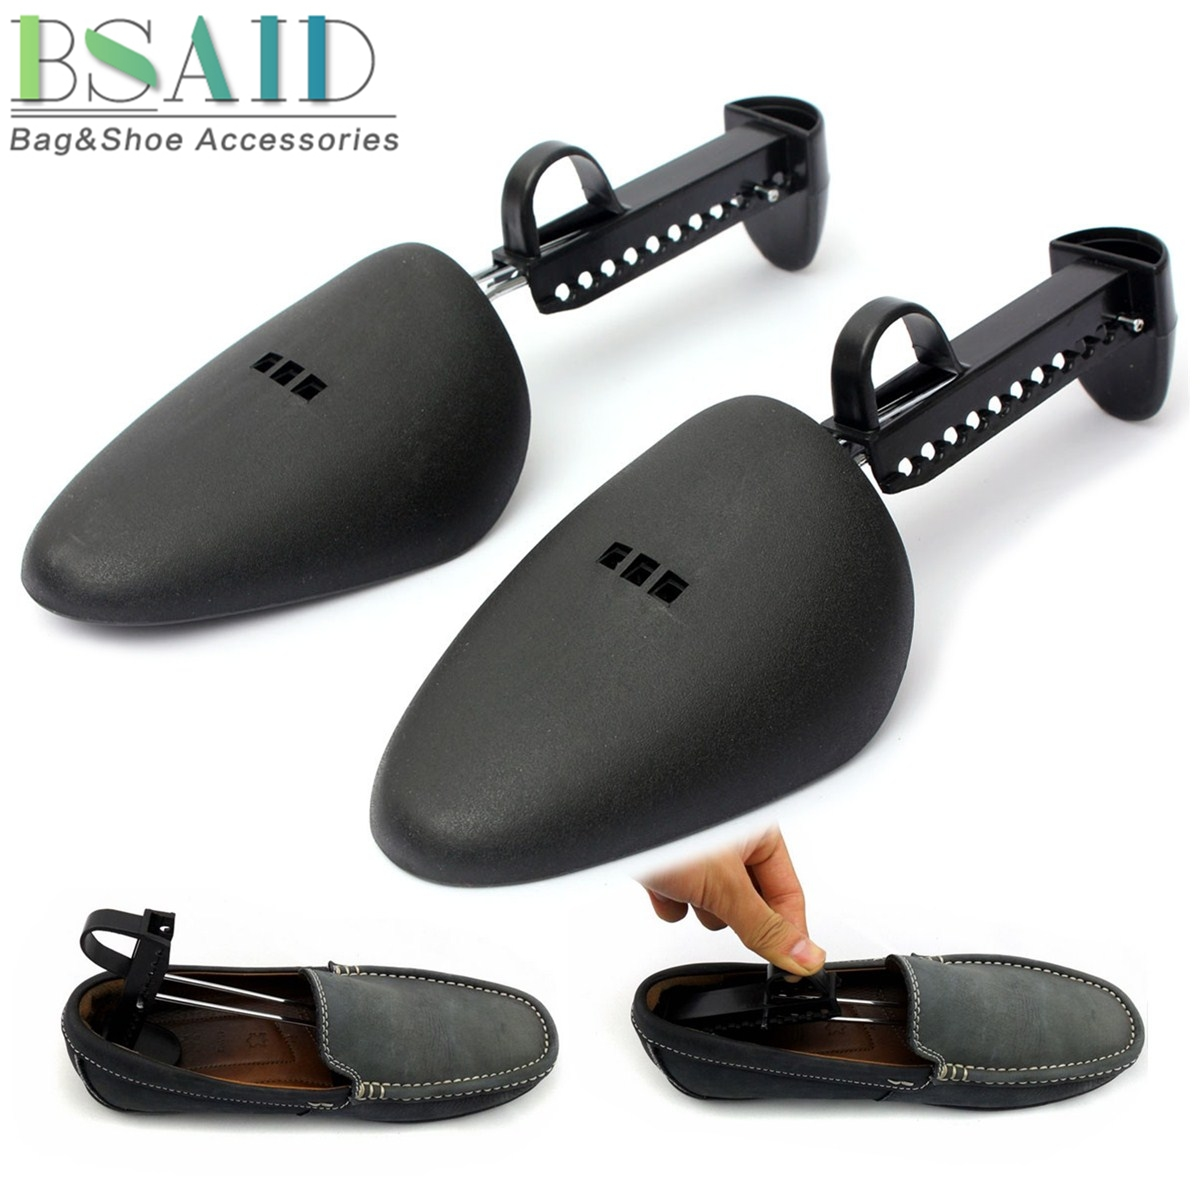 BSAID 1 Pair Shoe Stretcher Shoes Tree Shaper Rack Professional Adjustable Wooden Pumps Boots Expander Trees Holder Shaper New